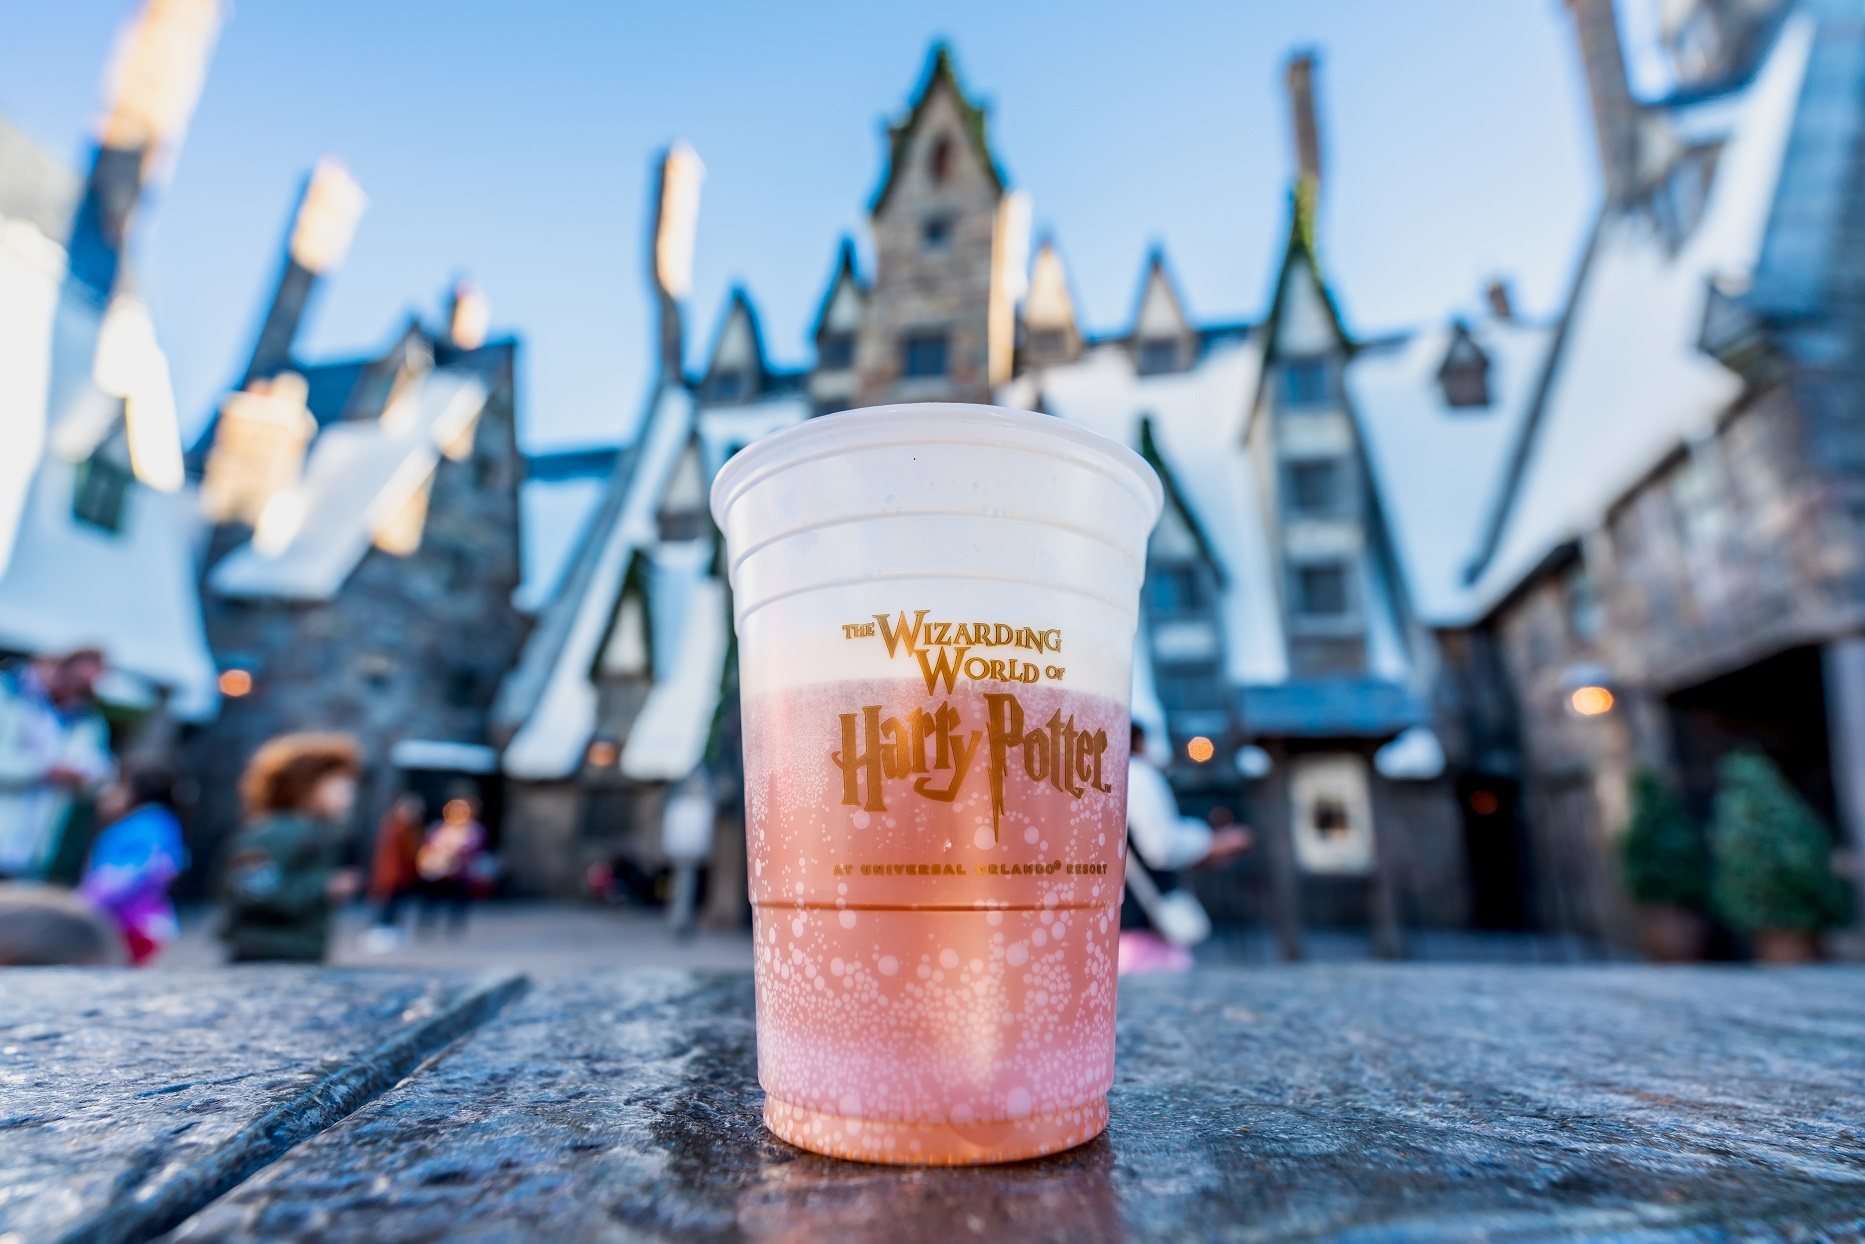 We Ranked All the Butterbeer Varieties at the Wizarding World of Harry Potter So You Can Order the Best